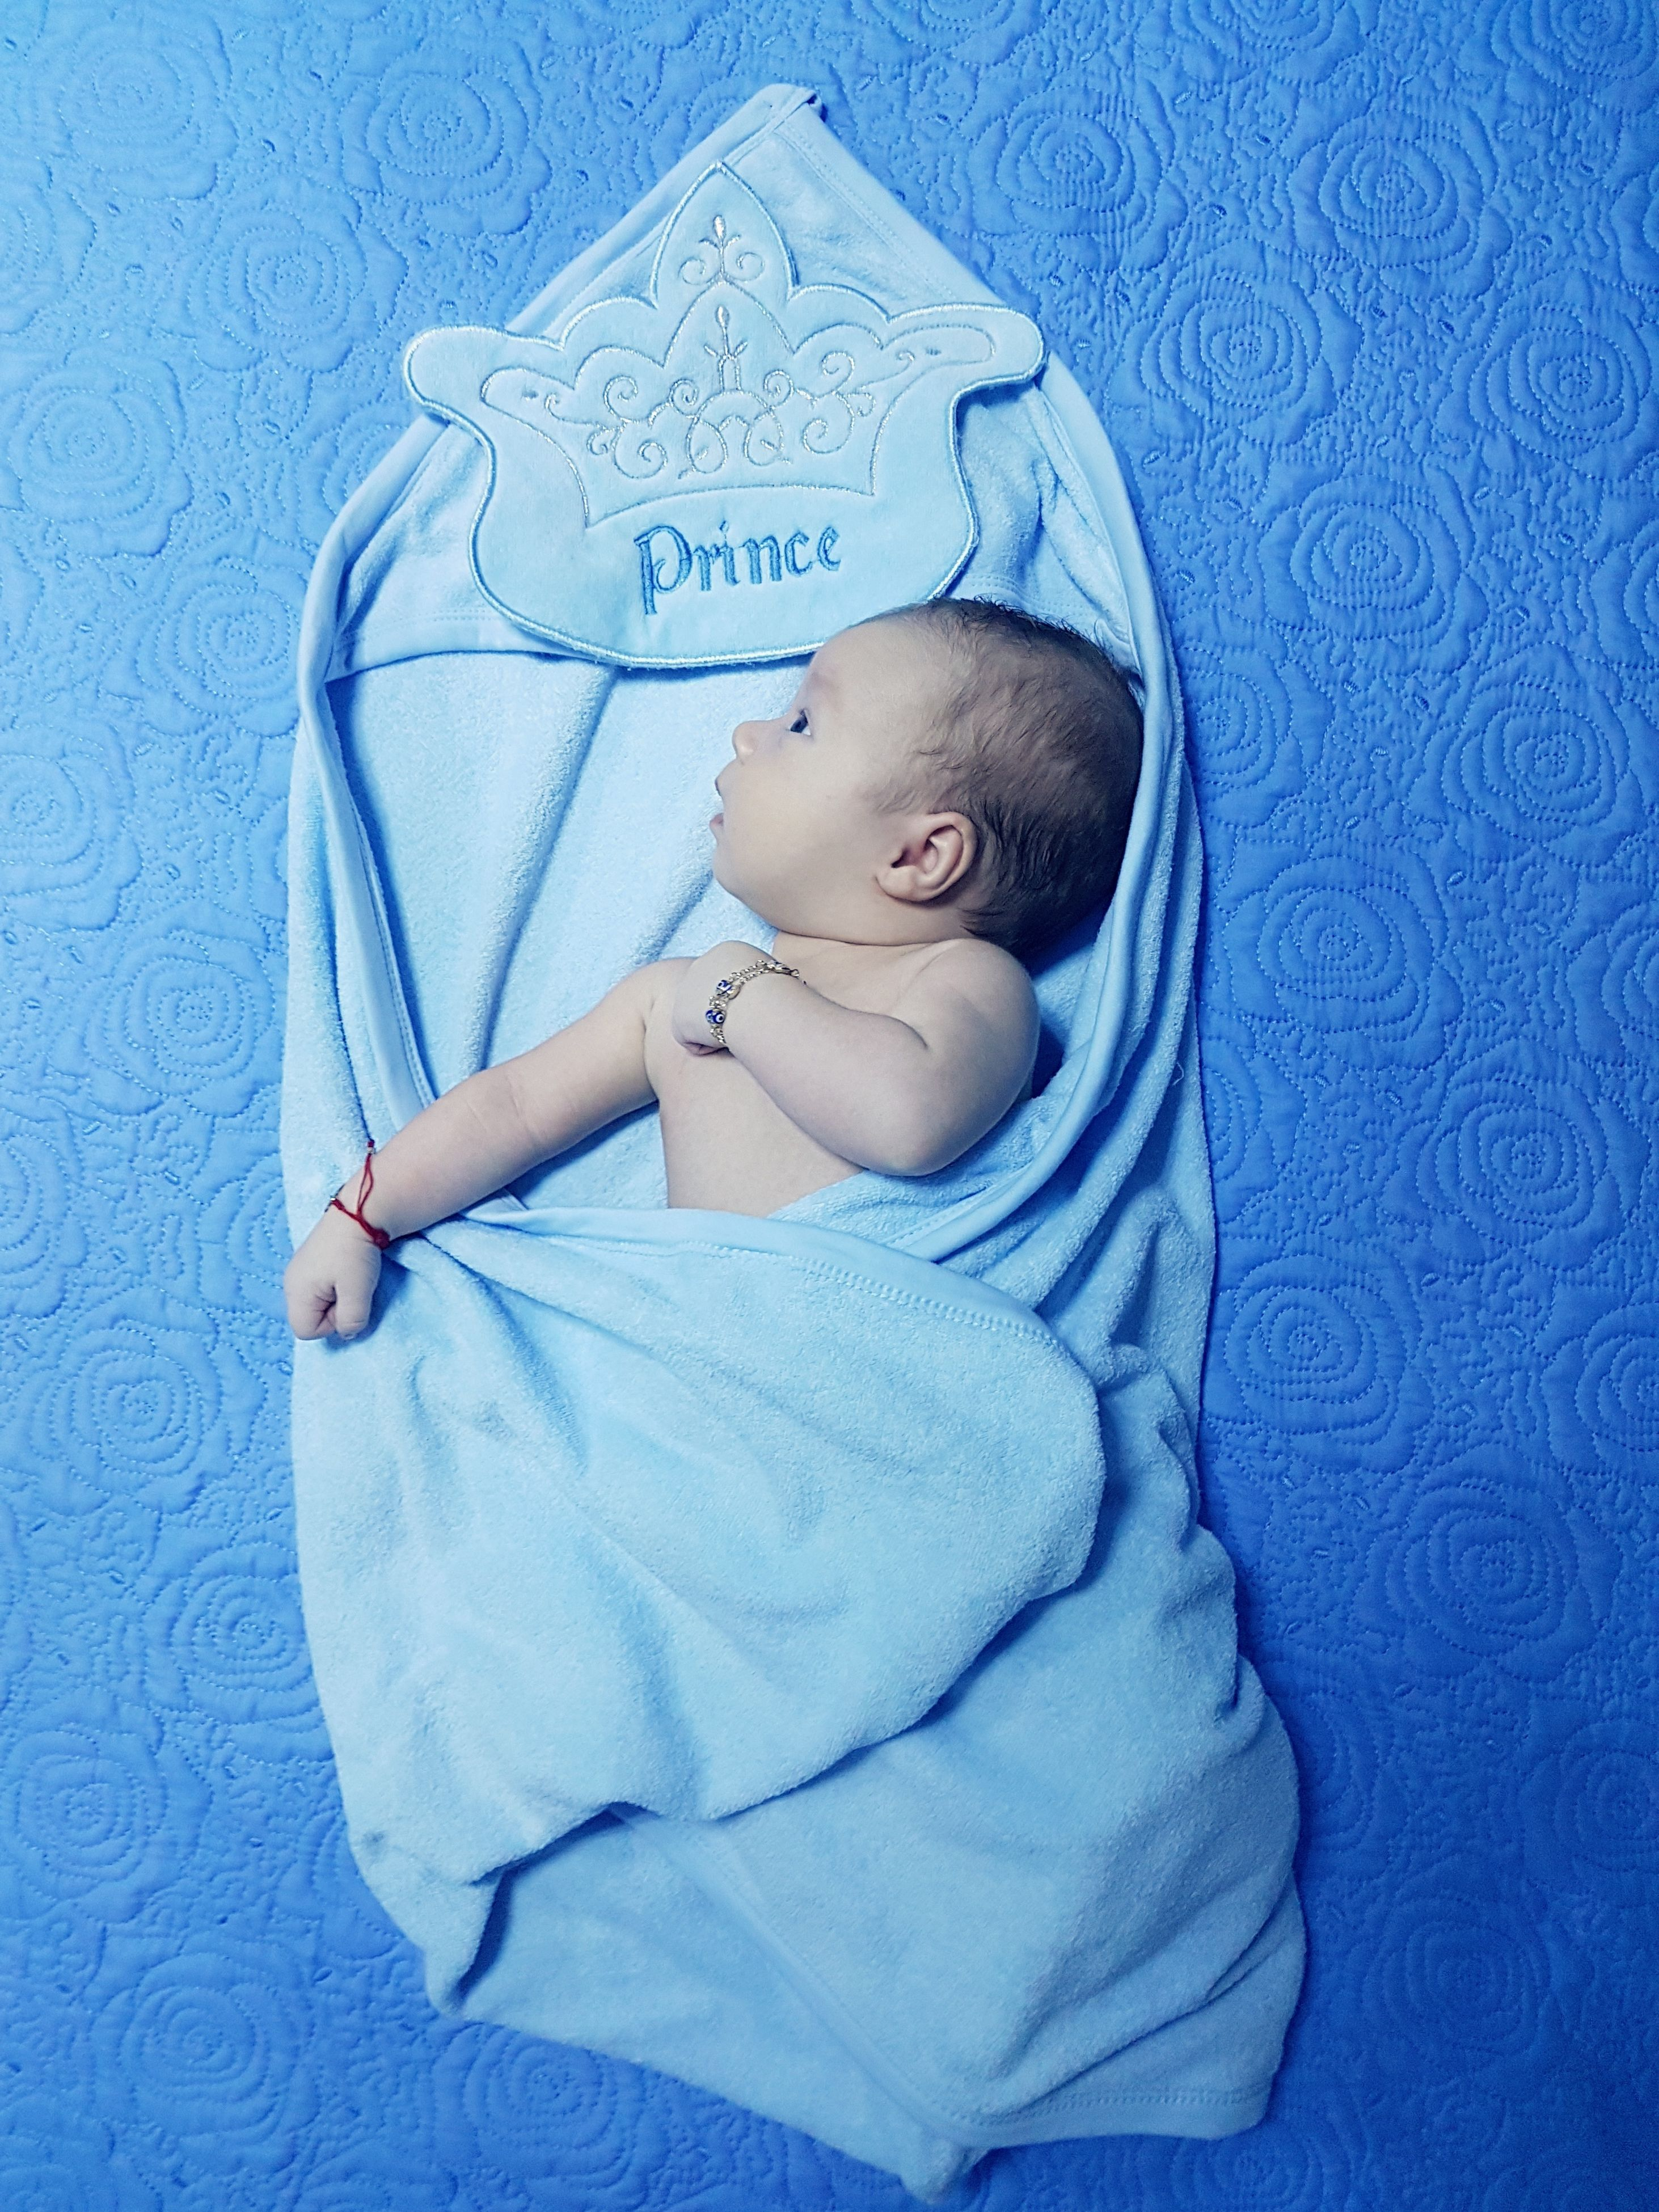 baby, childhood, blue, sleeping, one person, cute, babyhood, new life, innocence, babies only, newborn, real people, fragility, bed, relaxation, full length, indoors, pacifier, people, day, close-up